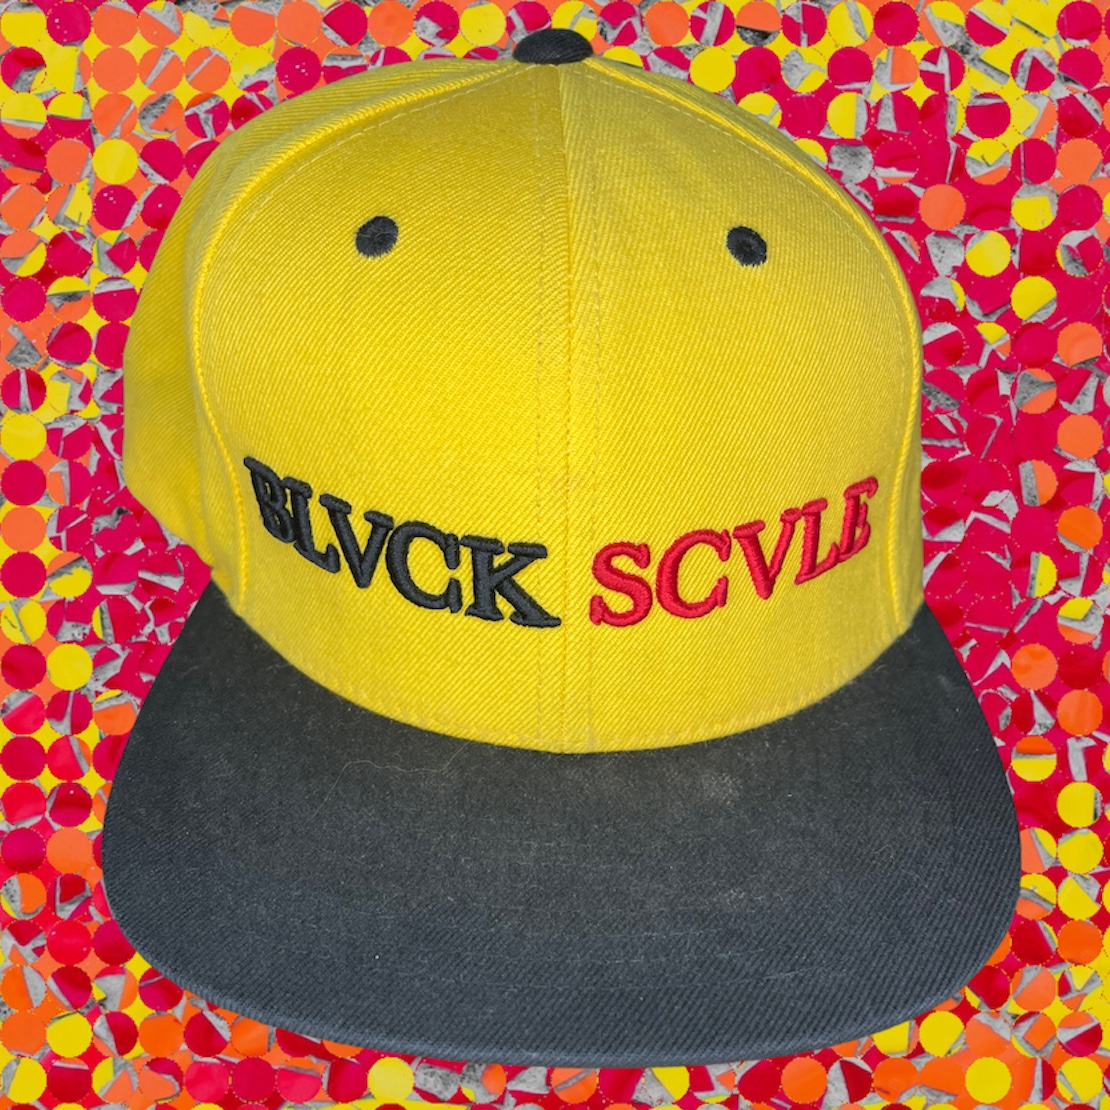 Product Image 1 - Black Scale men's yellow and